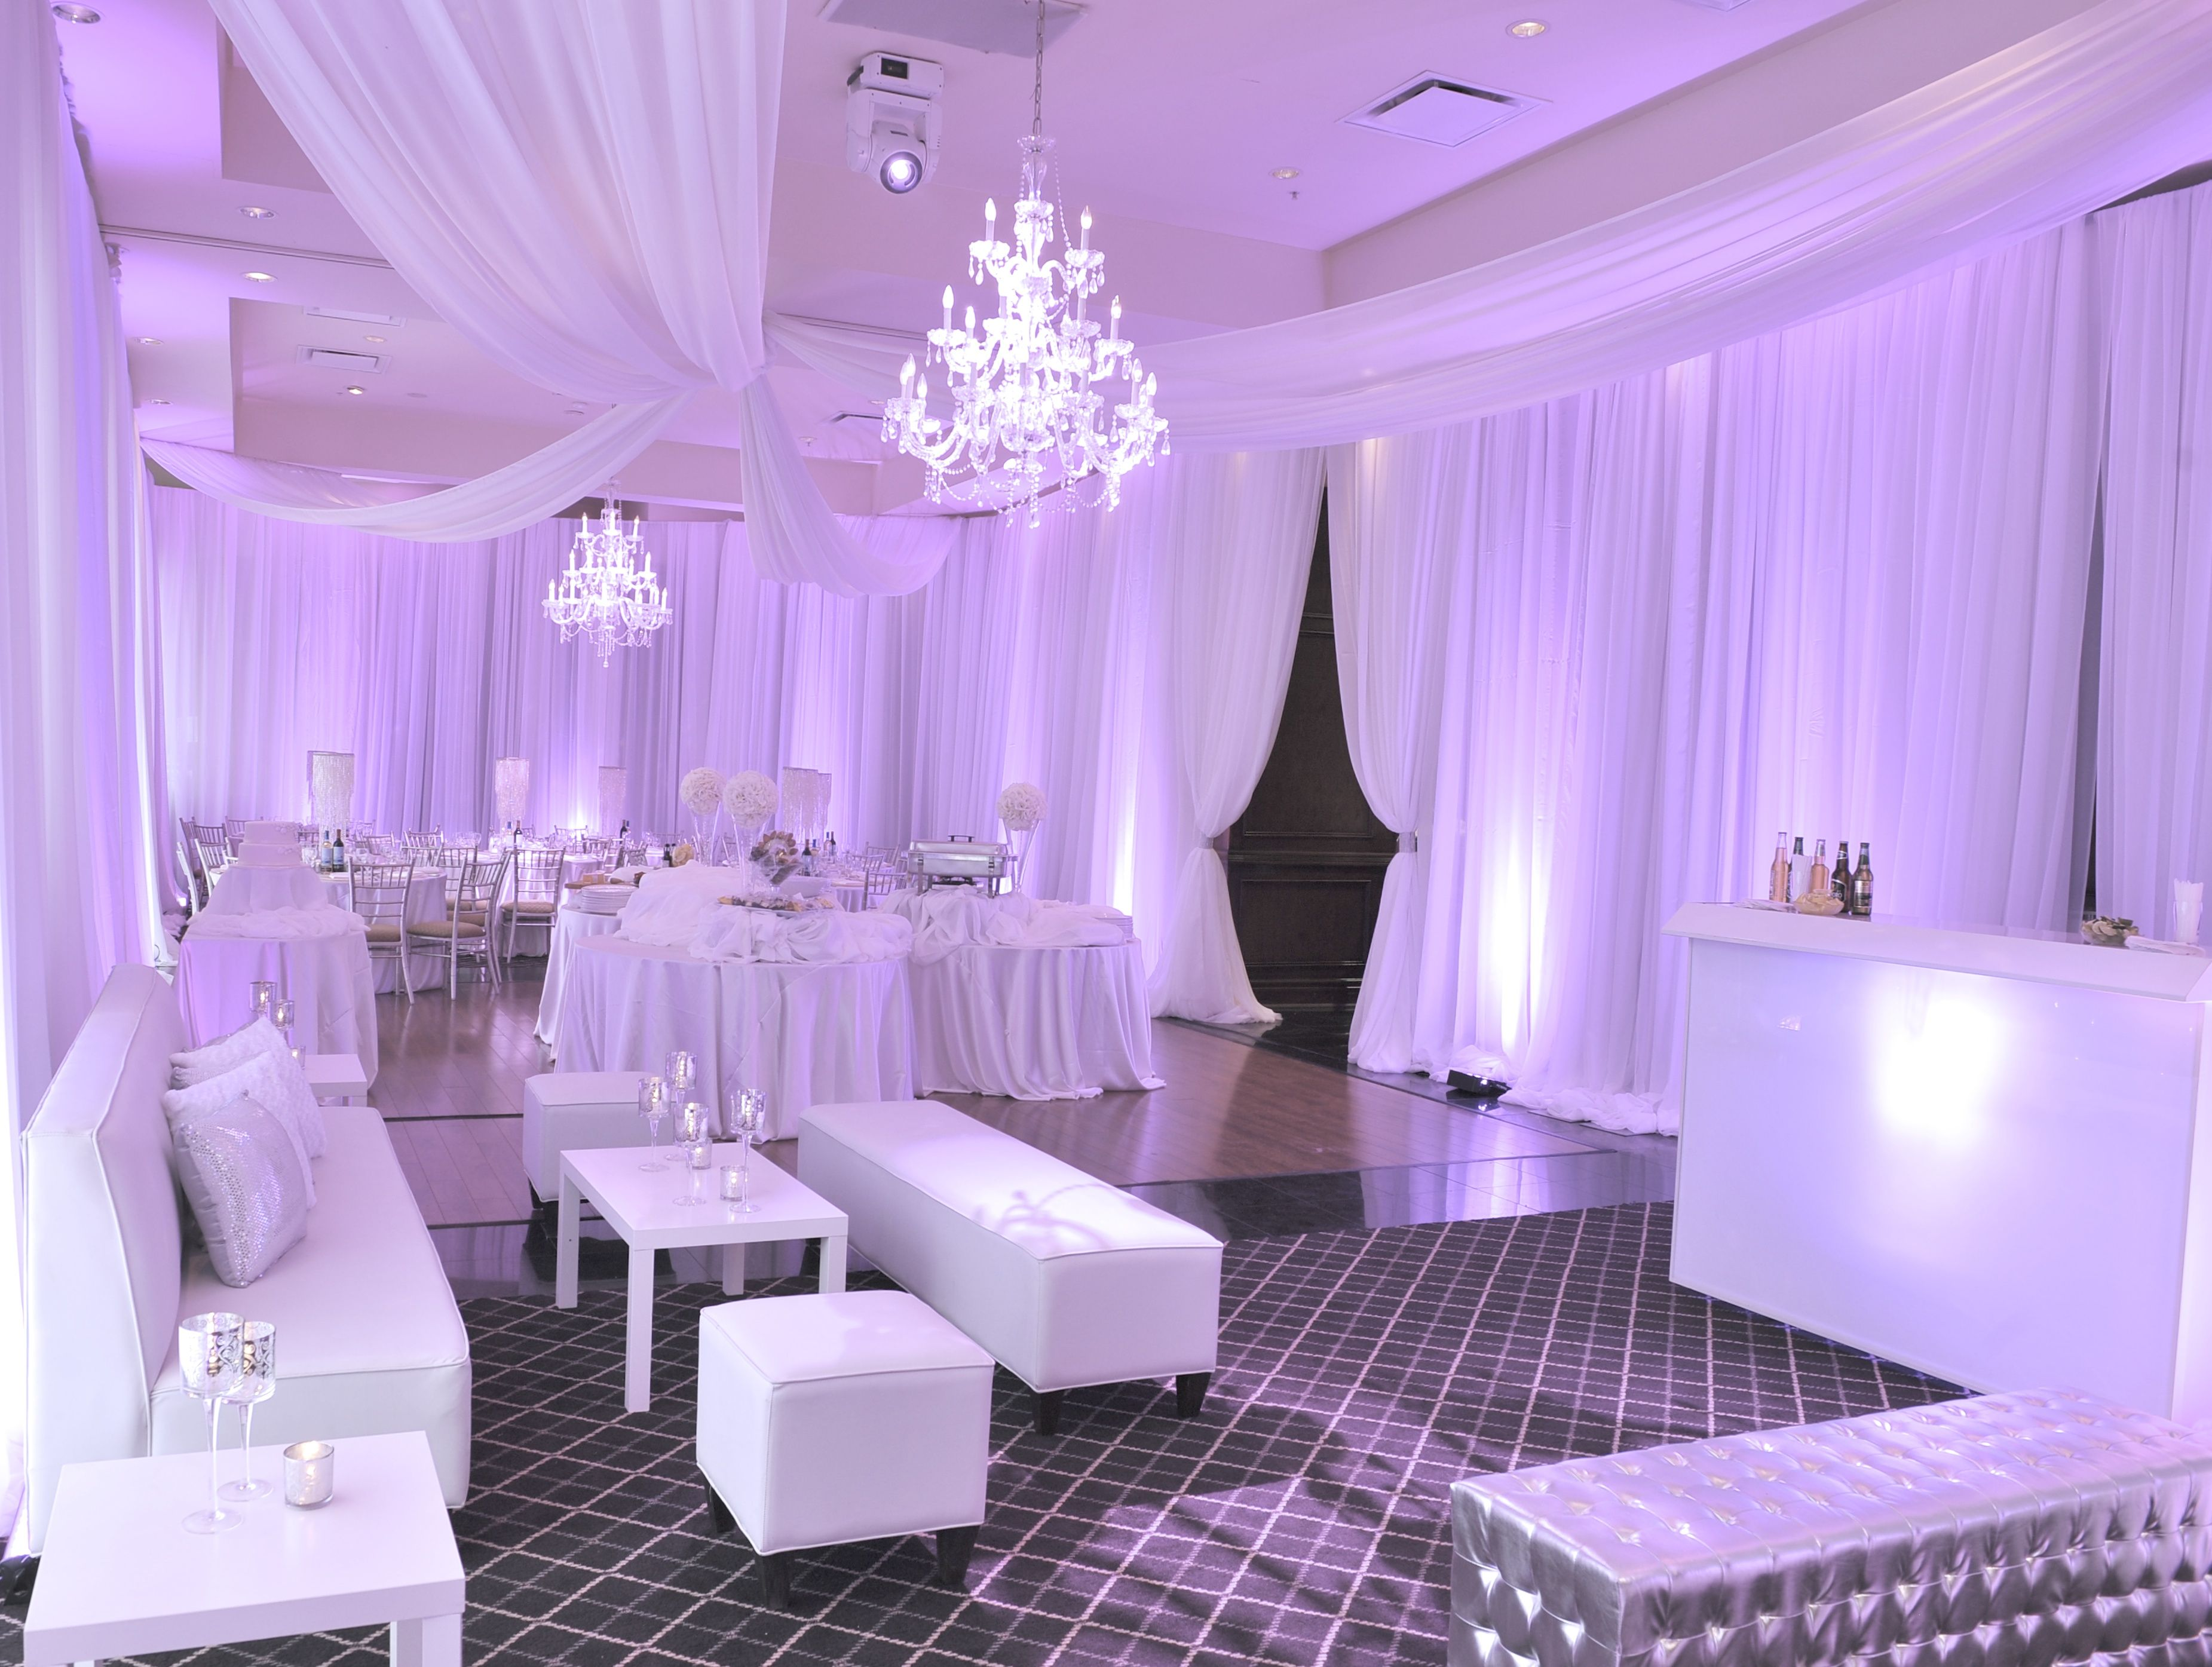 Paradise Banquet Hall Vaughan On Prince Room Wedding Banquet Hall Banquet Hall Wedding Hall